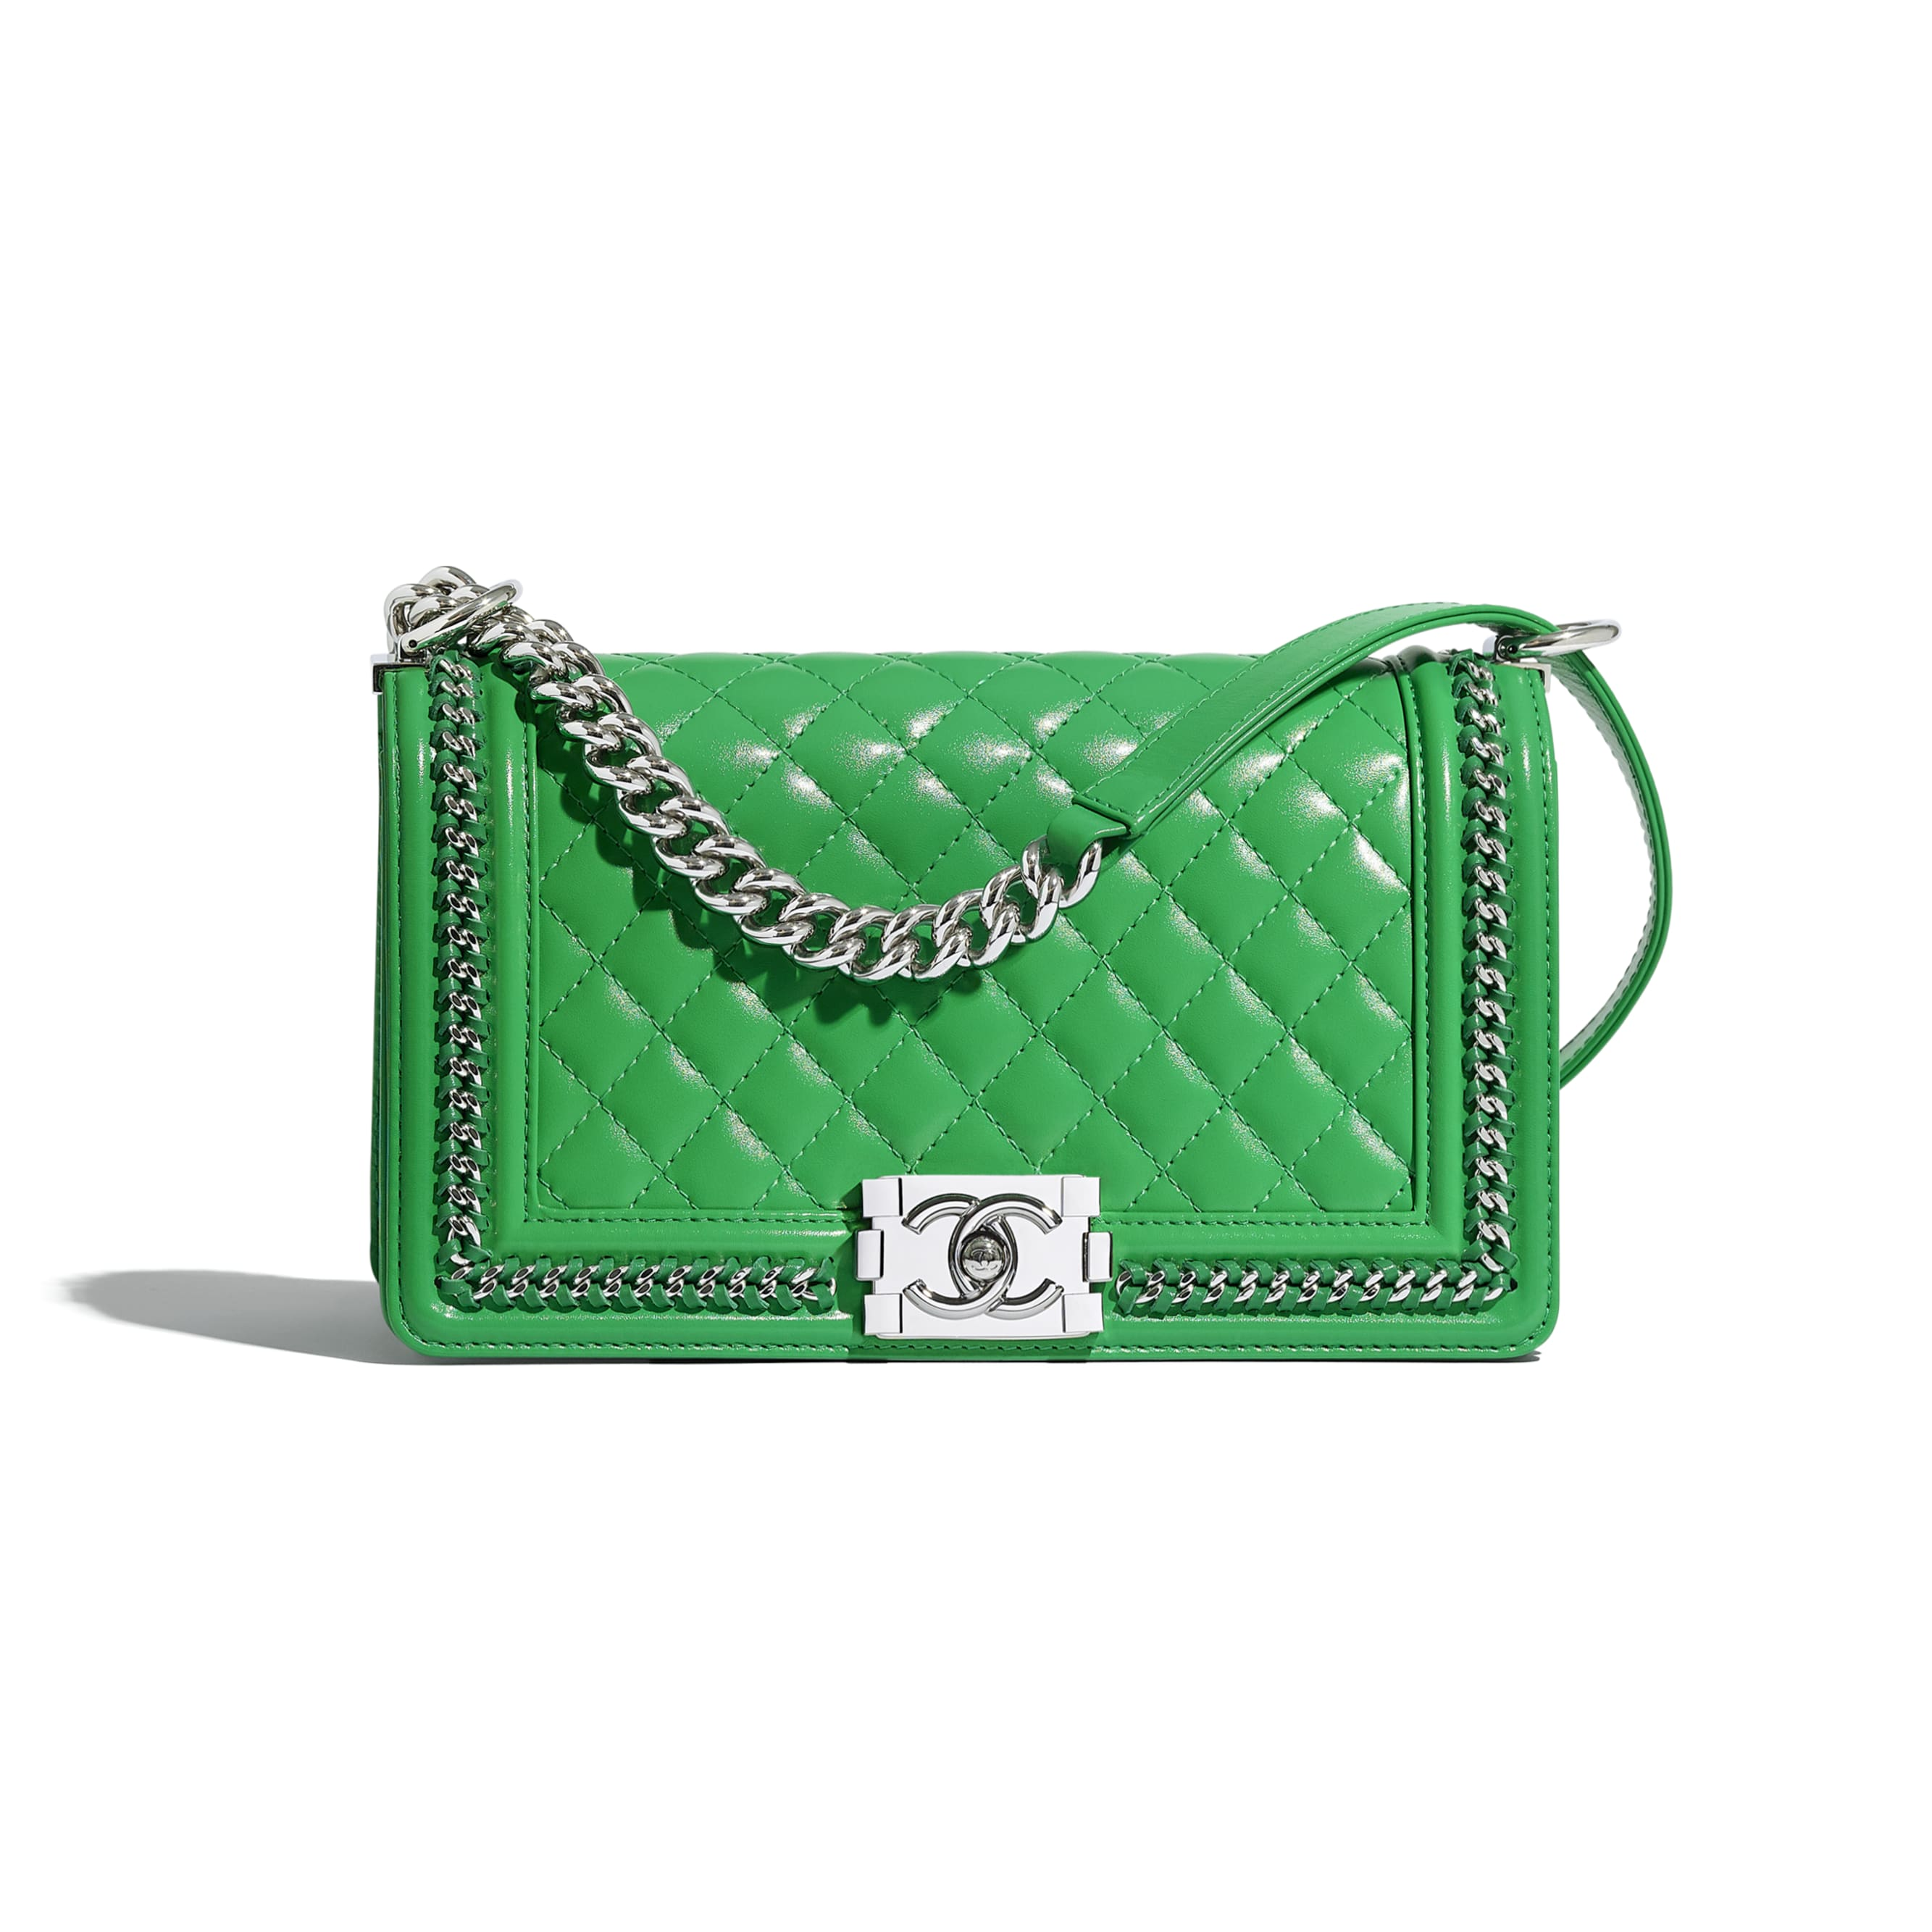 BOY CHANEL Handbag - Green - Calfskin & Silver Metal - CHANEL - Default view - see standard sized version